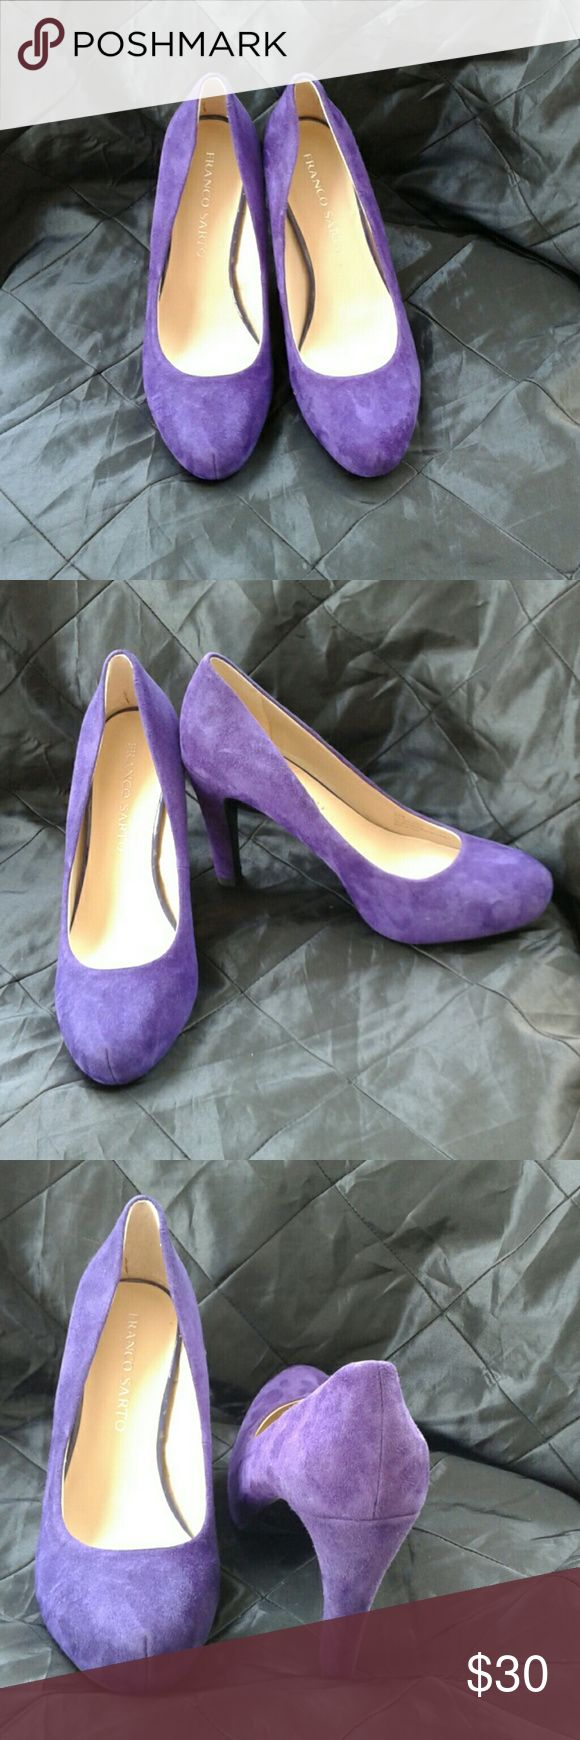 "FRANCO SARTO ""CICERO"" PURPLE SUEDE PLATFORM PUMPS PURPLE SUEDE PLATFORM PUMPS, 4"" HEEL, .075 PLATFORM, WITH HIDDEN WEDGE, RUBBER SOLE, MAN MADE LINING, GREAT PRE-LOVED CONDITION NO SIGNS OF WEAR NO FRANCO SARTO Shoes Platforms"